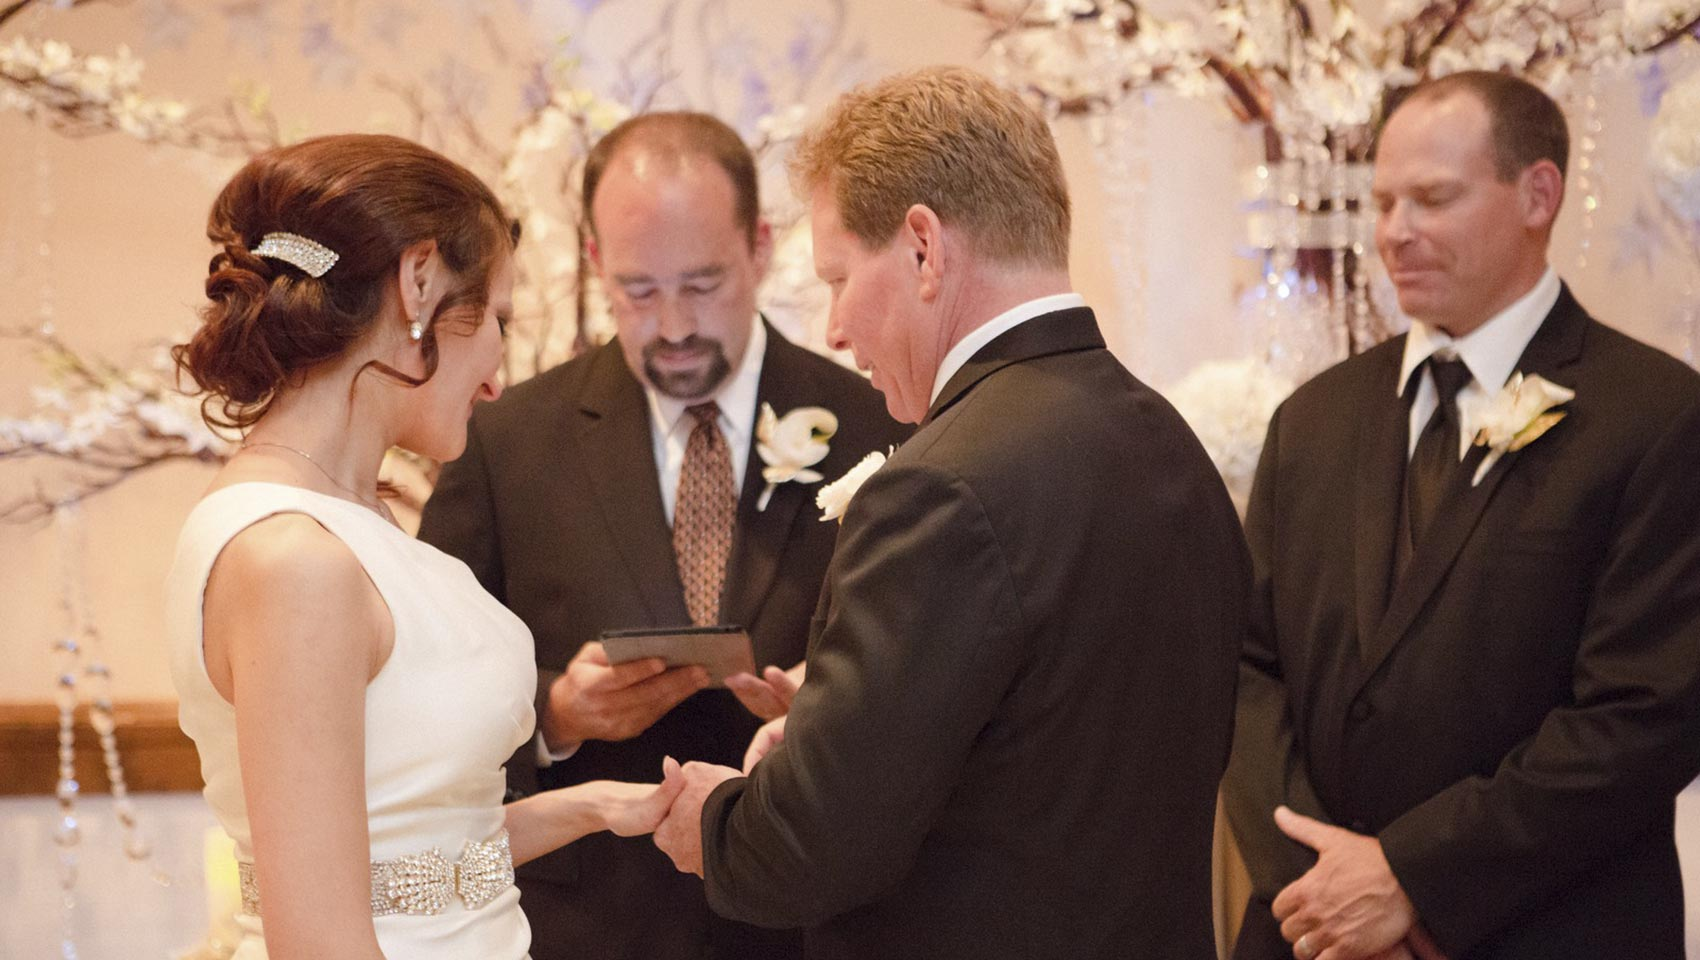 groom placing ring on bride at wedding ceremony